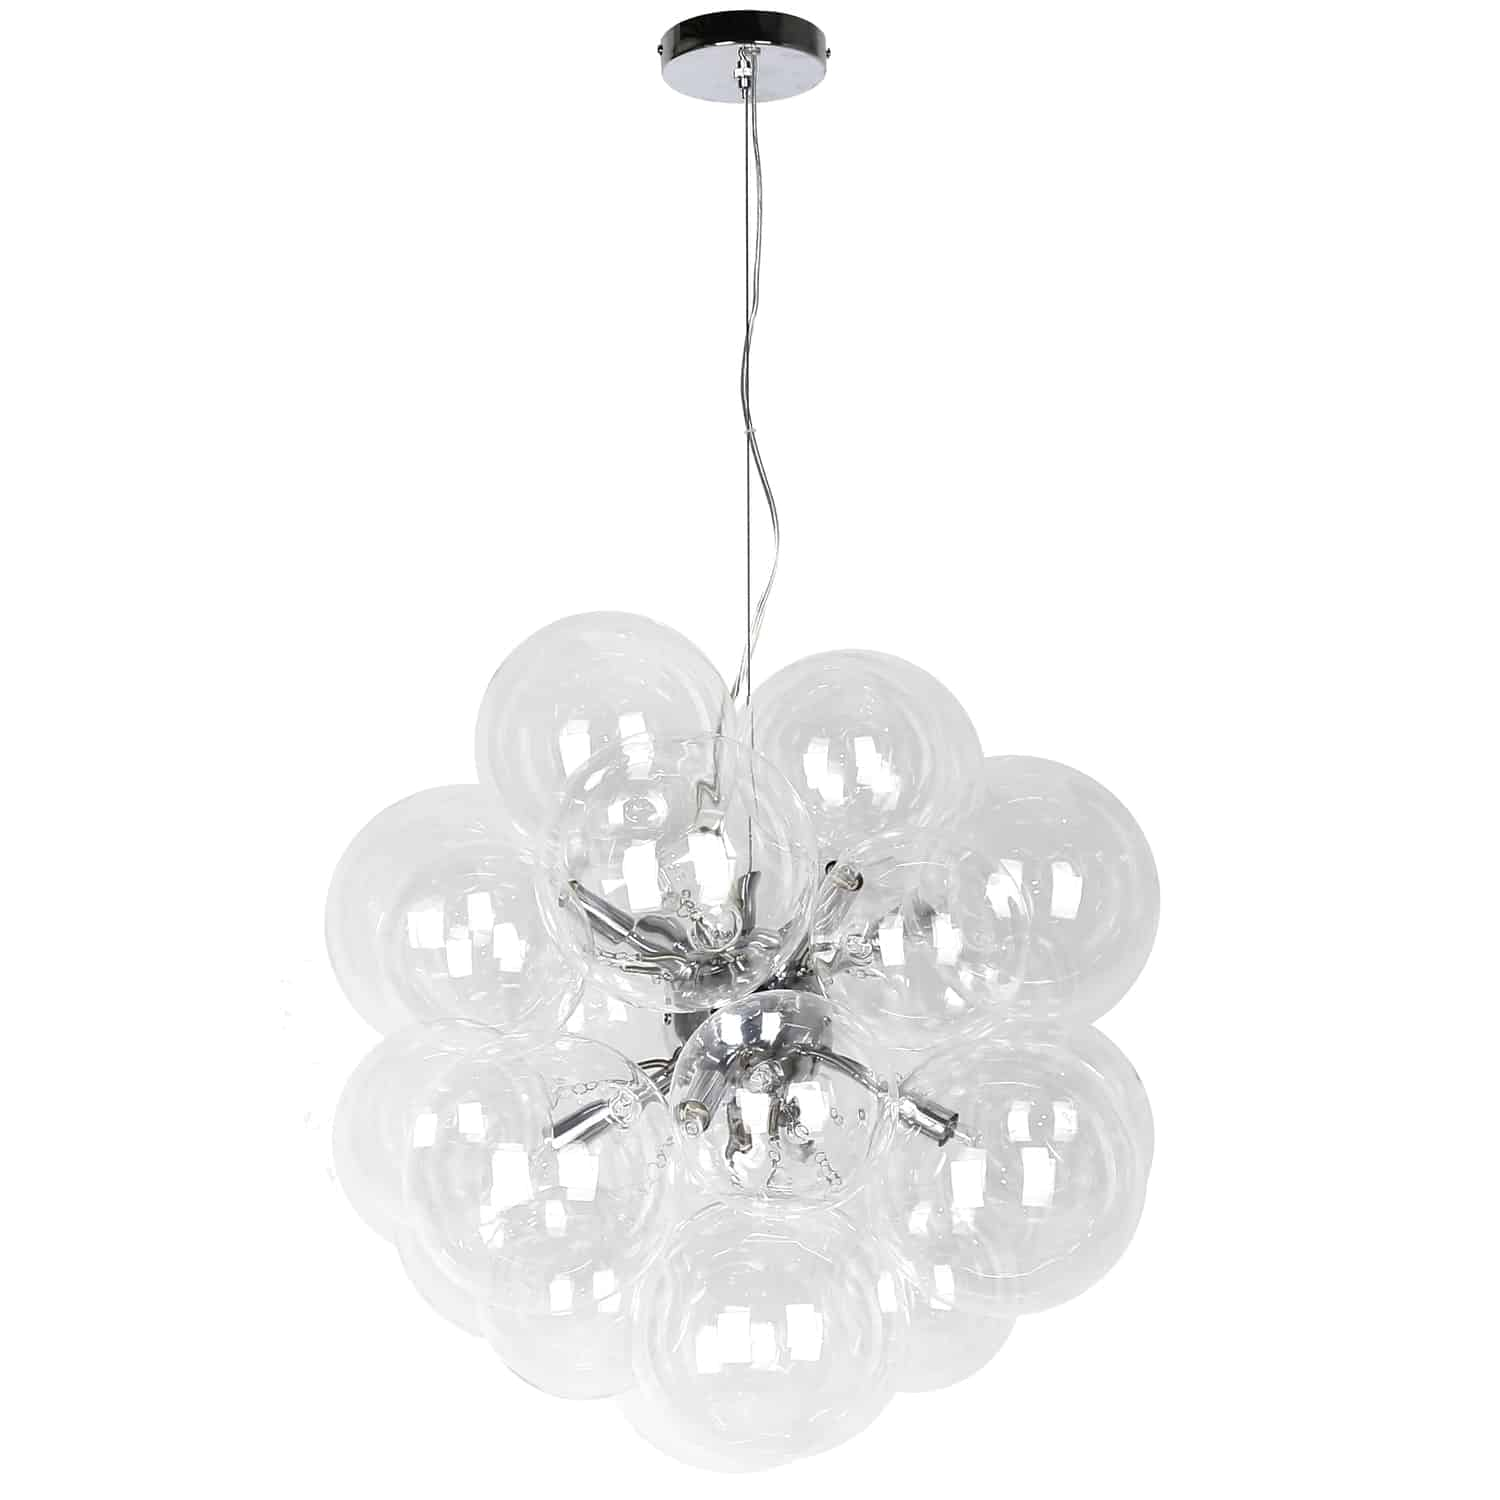 6 Light Halogen Pendant Polished Chrome Finish with Clear Glass